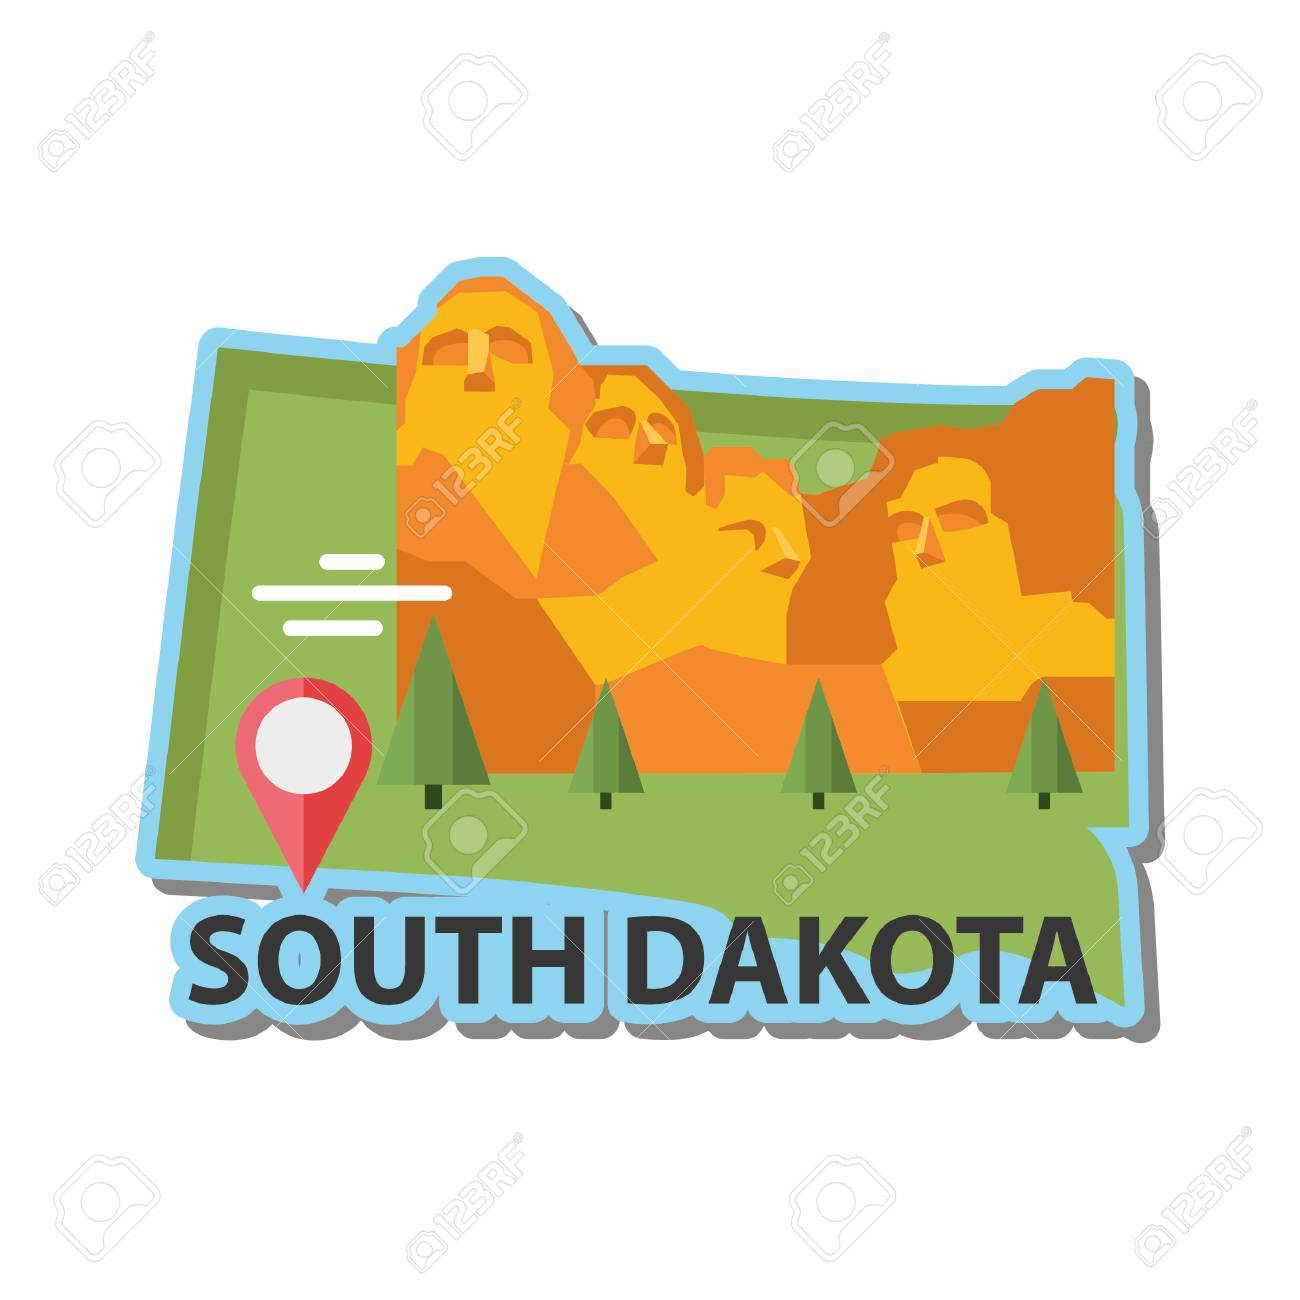 Map Of South Dakota State Royalty Free Cliparts Vectors And Stock